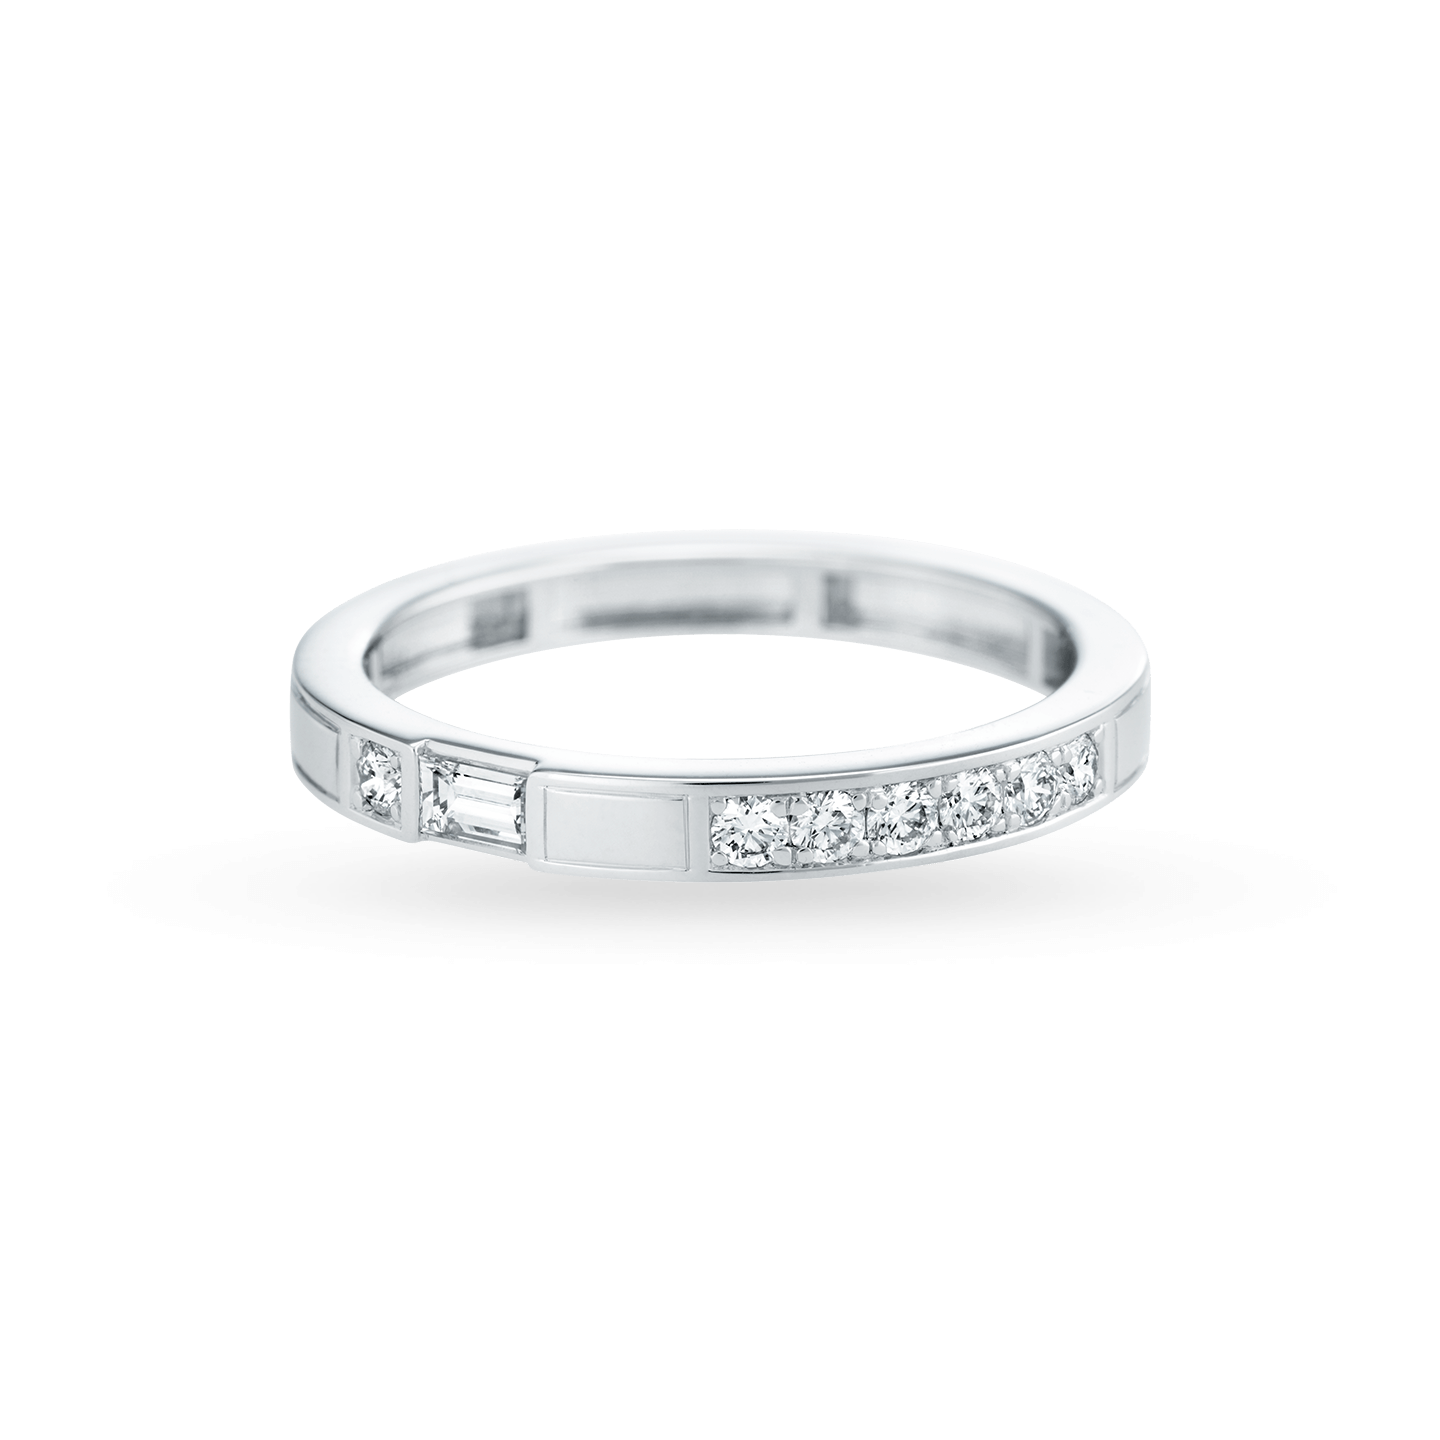 Traffic Diamond Wedding Band, Product Image 2